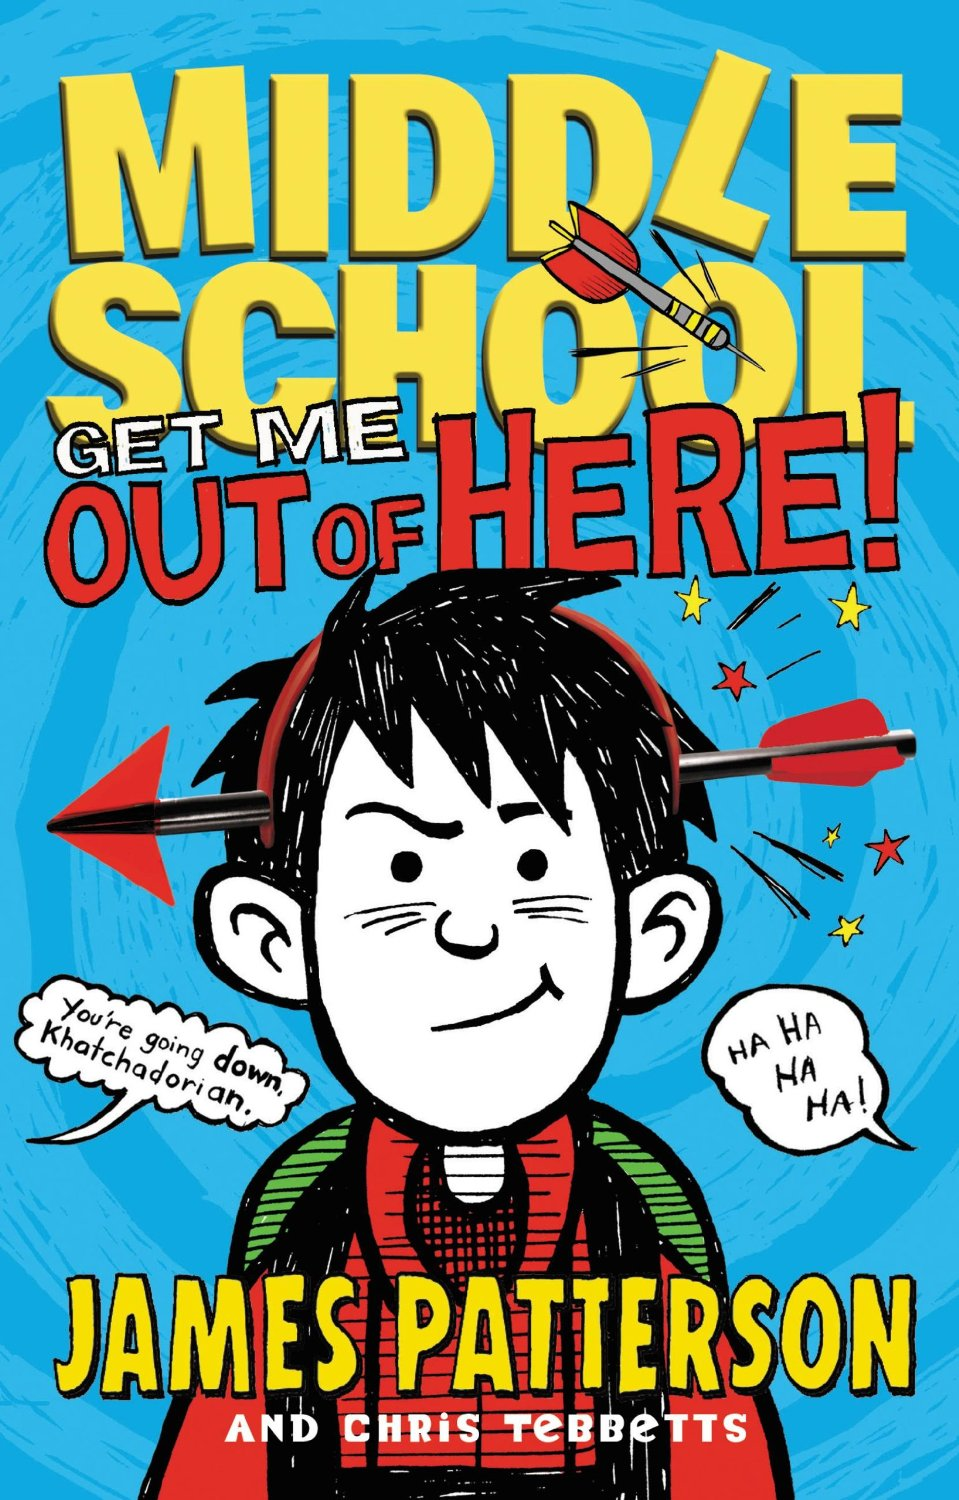 Book Cover School Near Me ~ James patterson get me out of here